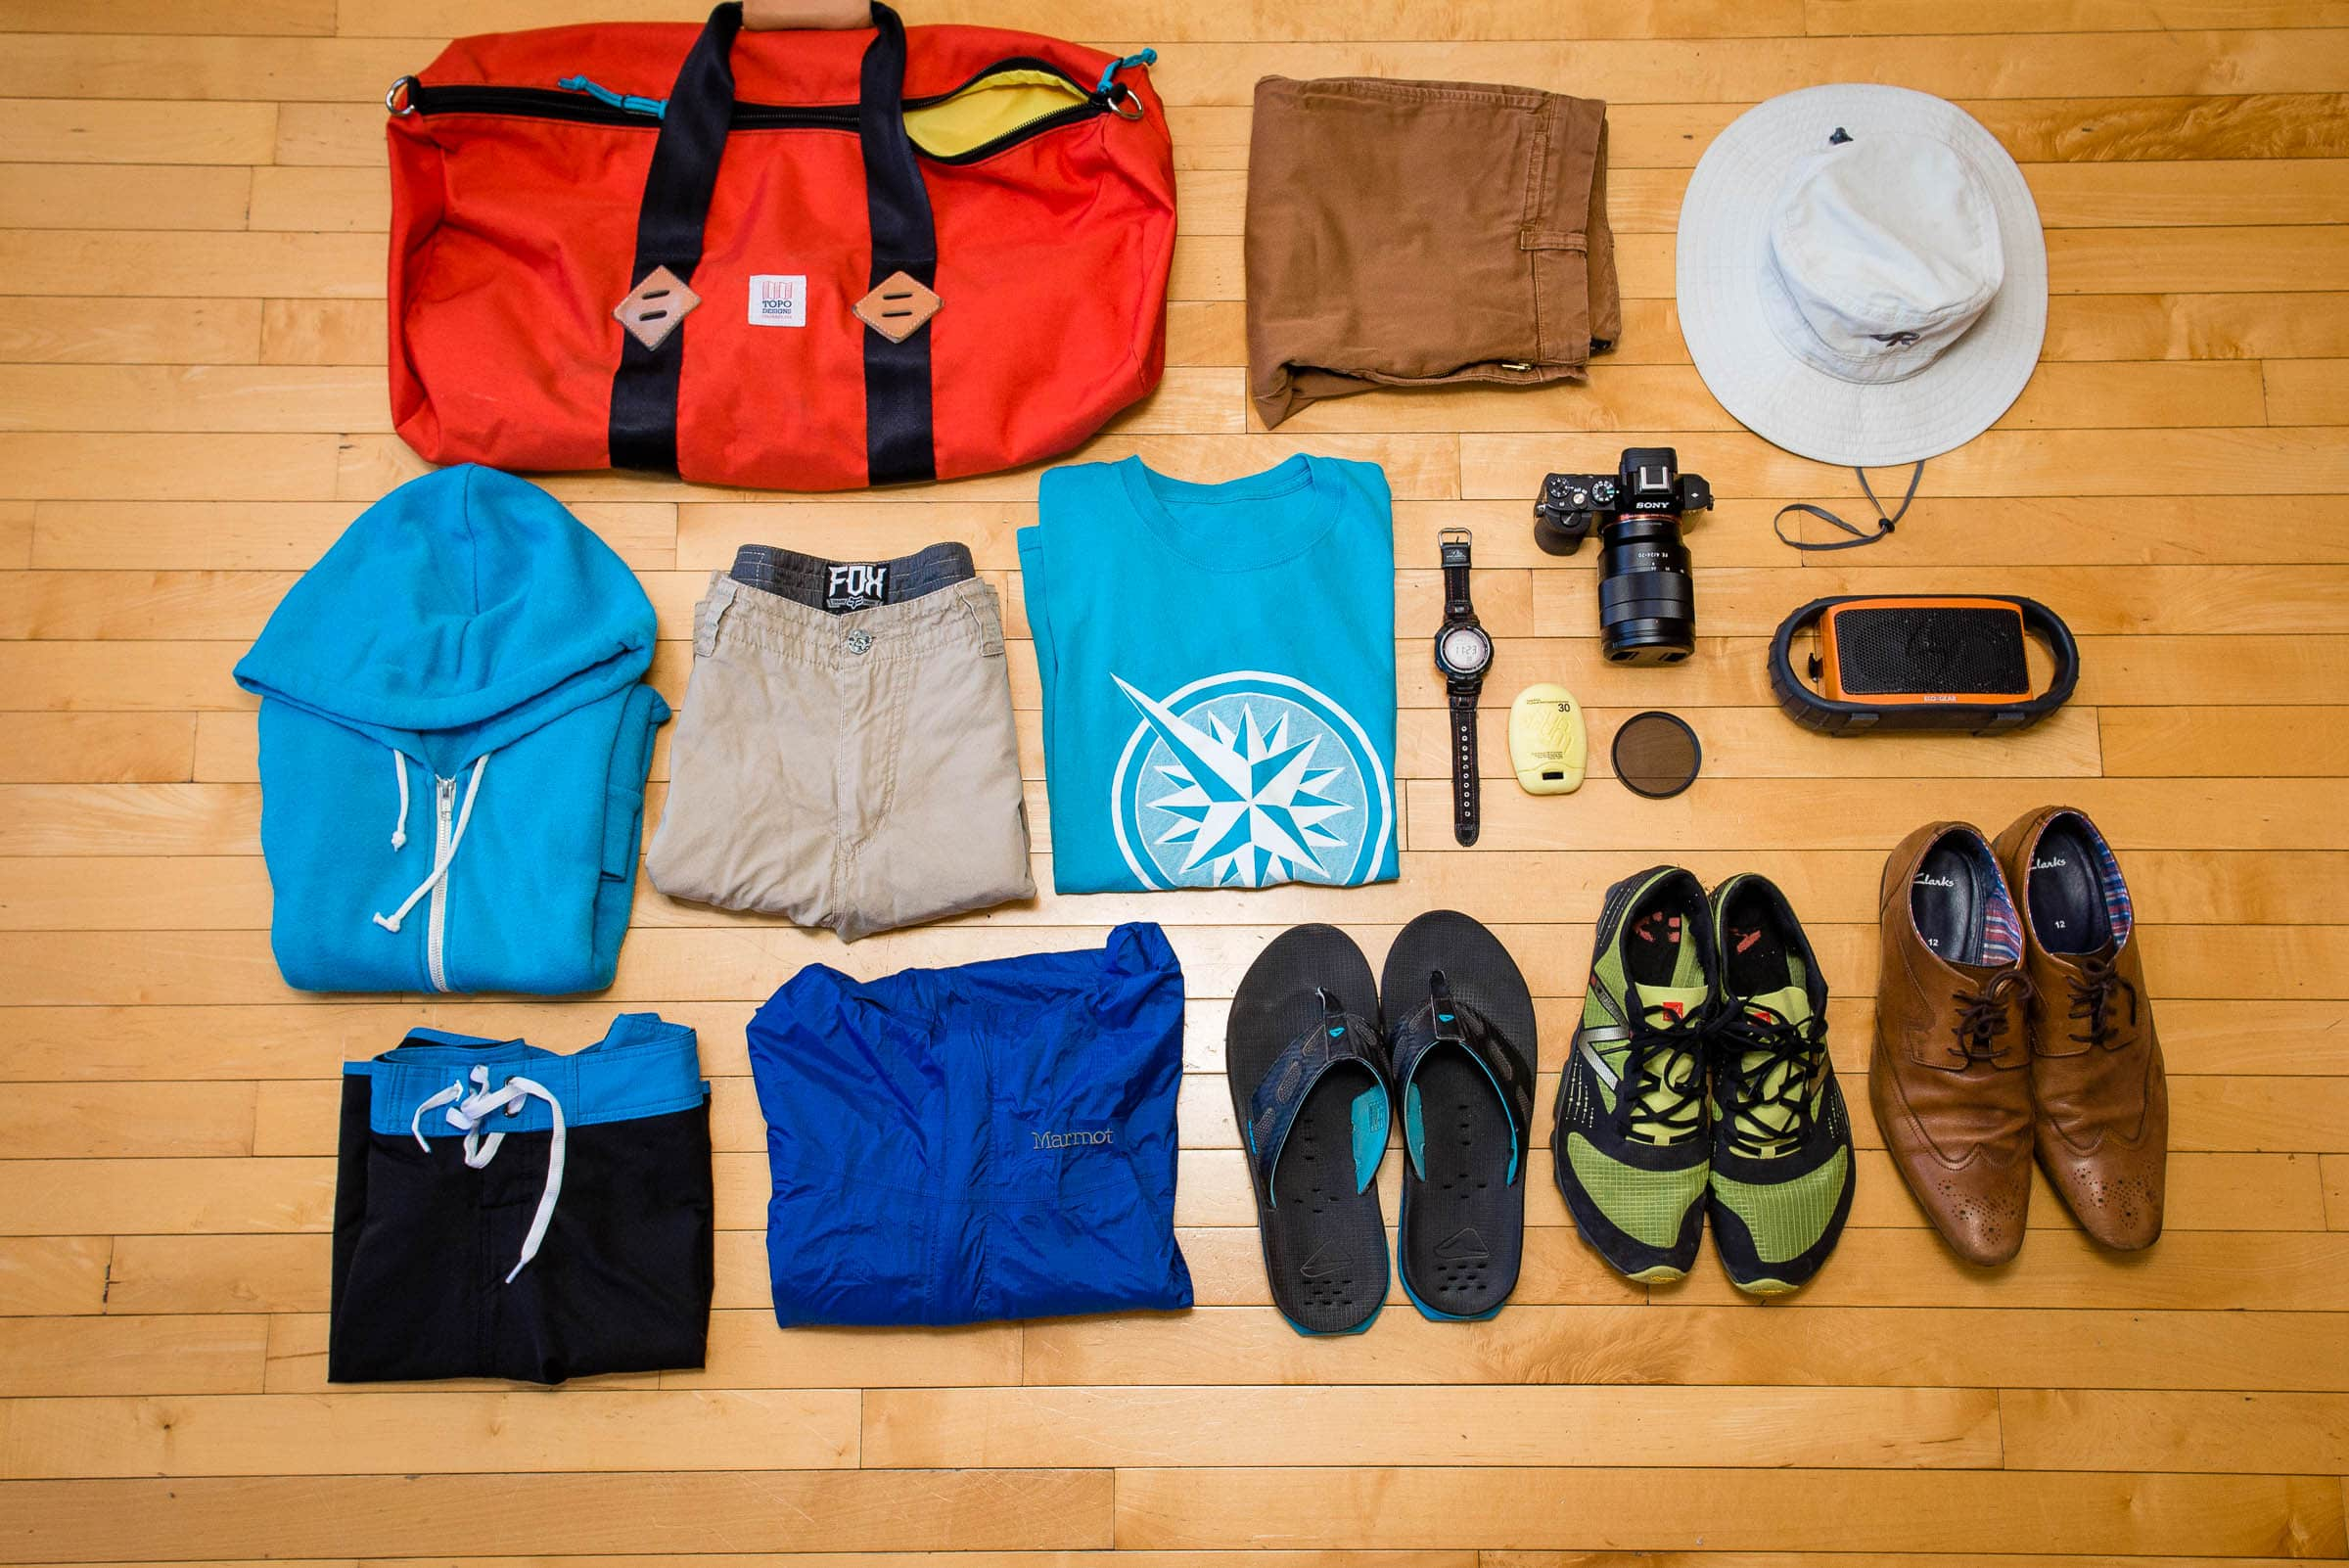 Packing List: Caribbean Essentials by Patrick Bennett